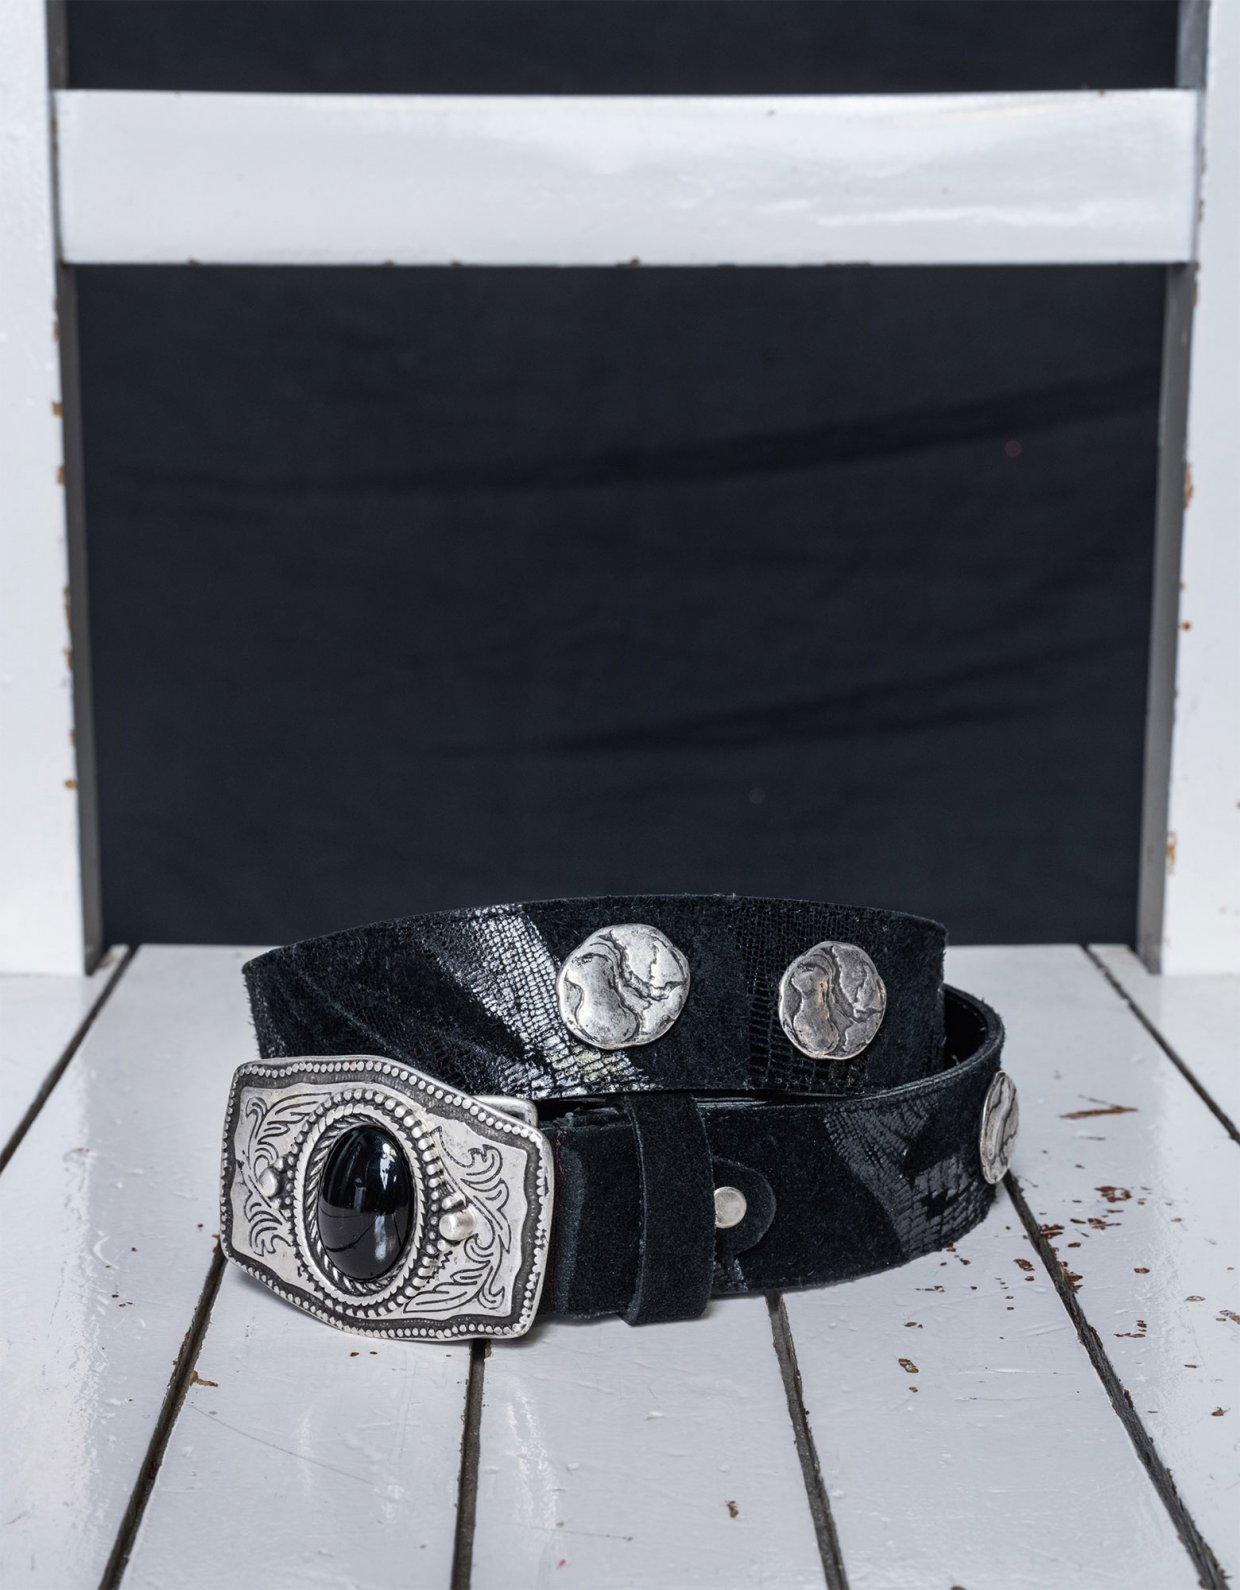 Nadia Rapti Coldplay belt black